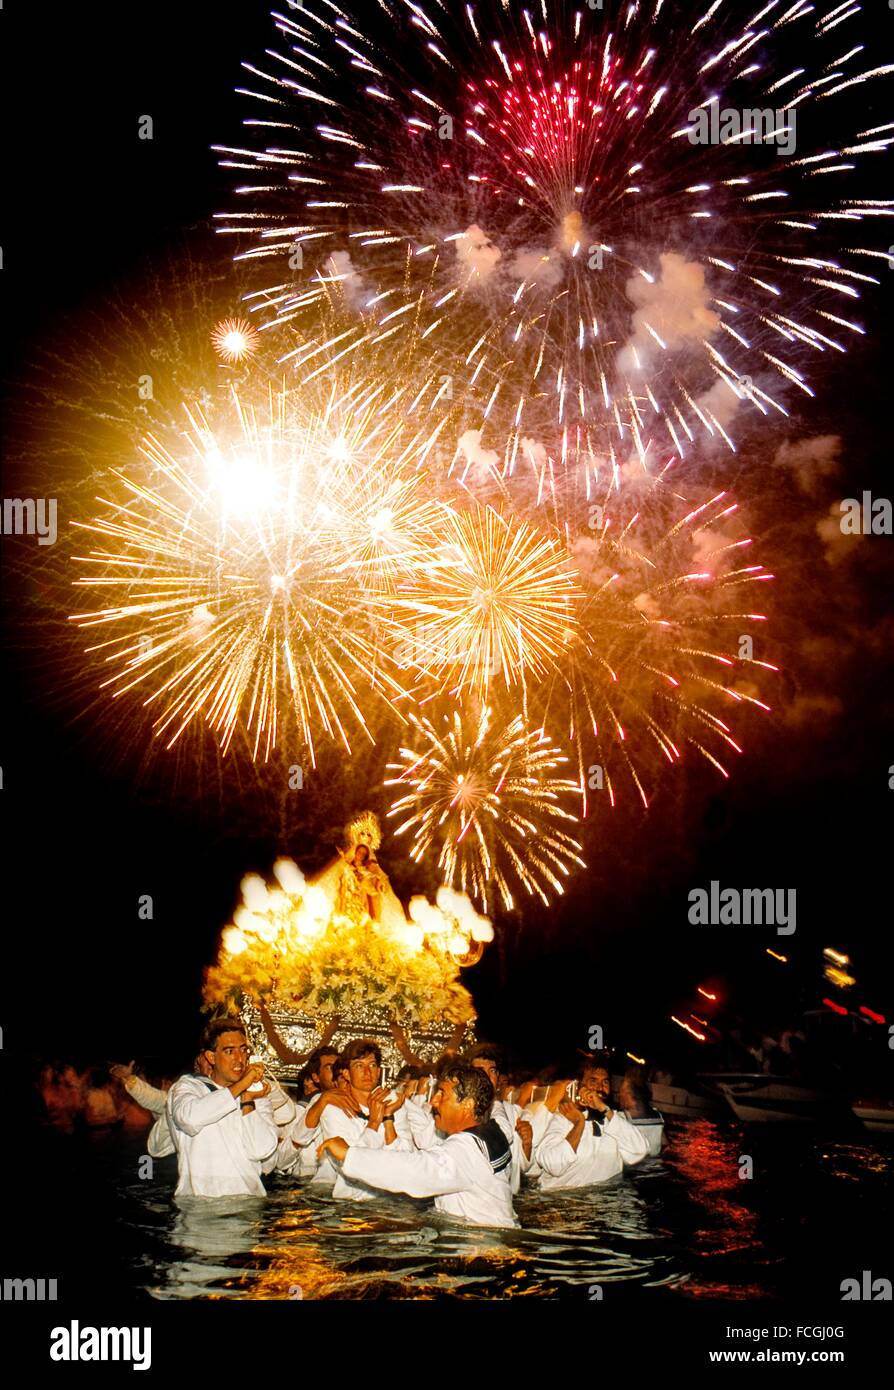 Fireworks seafaring procession Virgen del Carmen, Fuengirola, Malaga, Andalusia, Spain - Stock Image